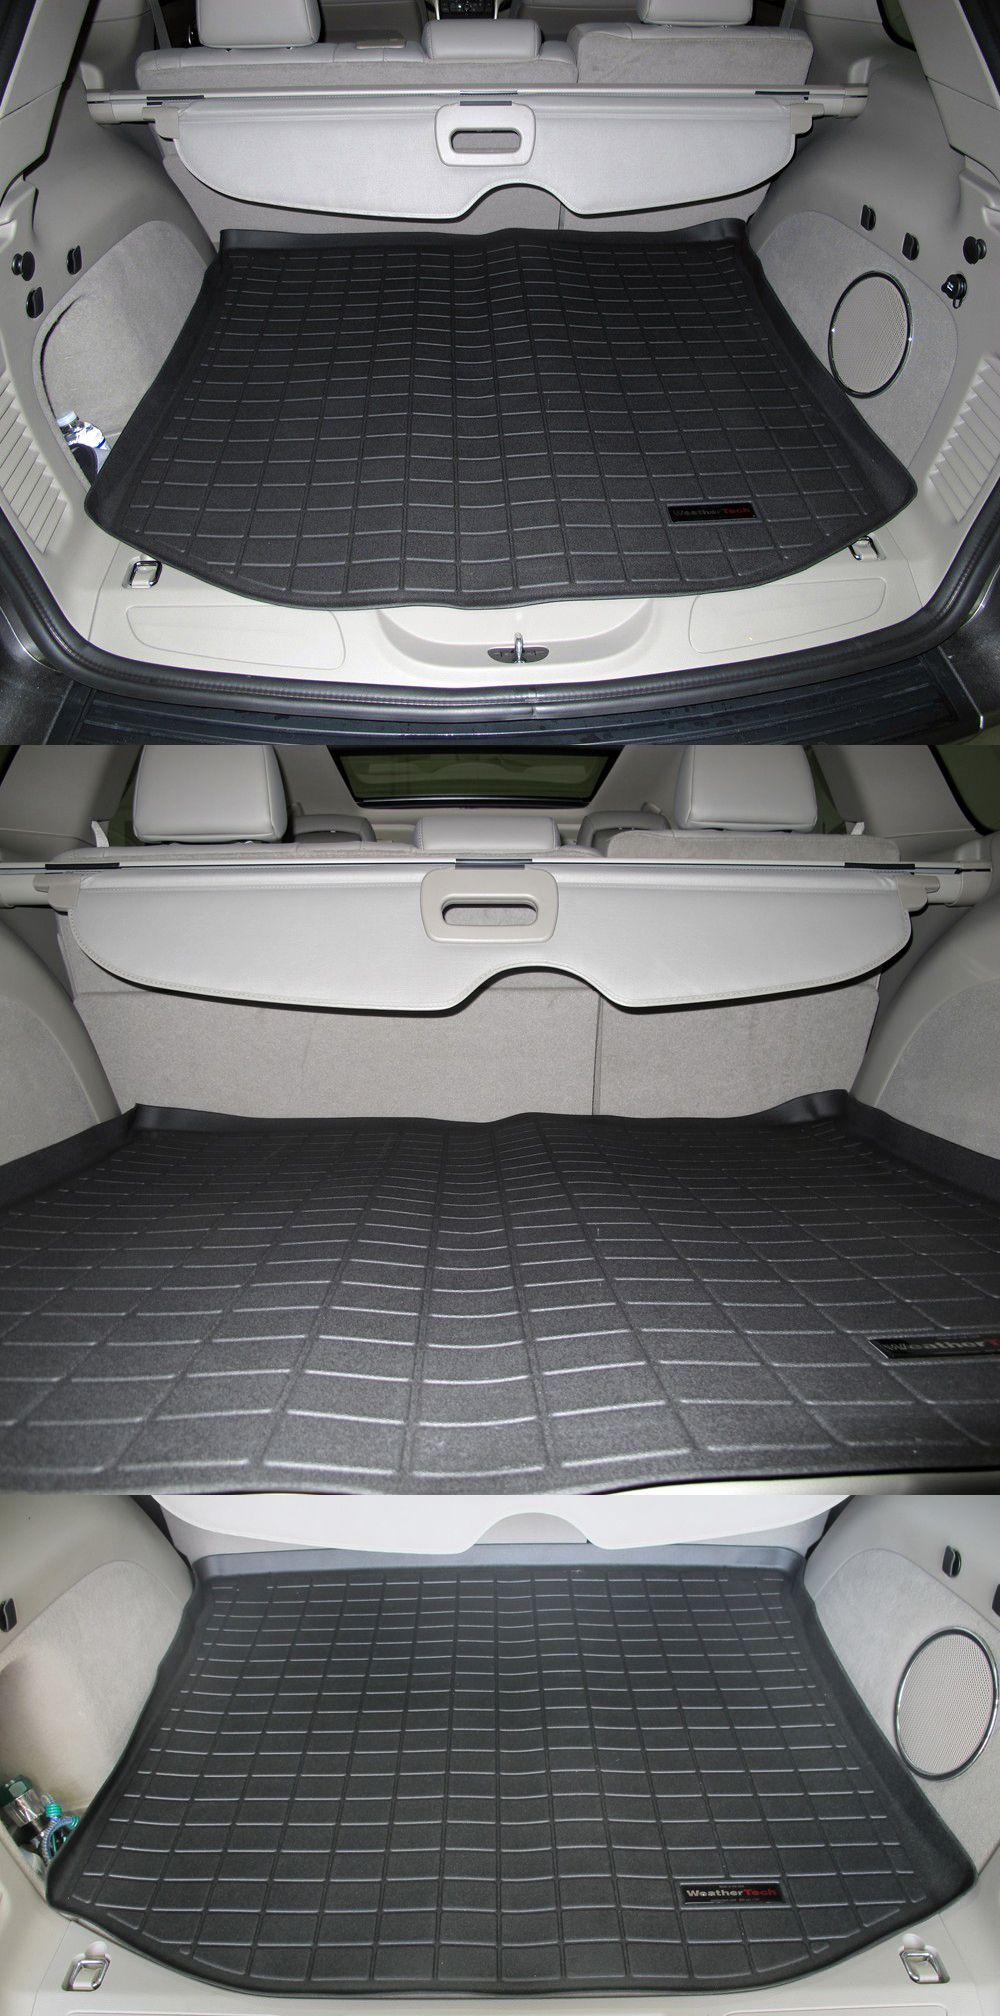 2014 Jeep Grand Cherokee Floor Mats WeatherTech Jeep